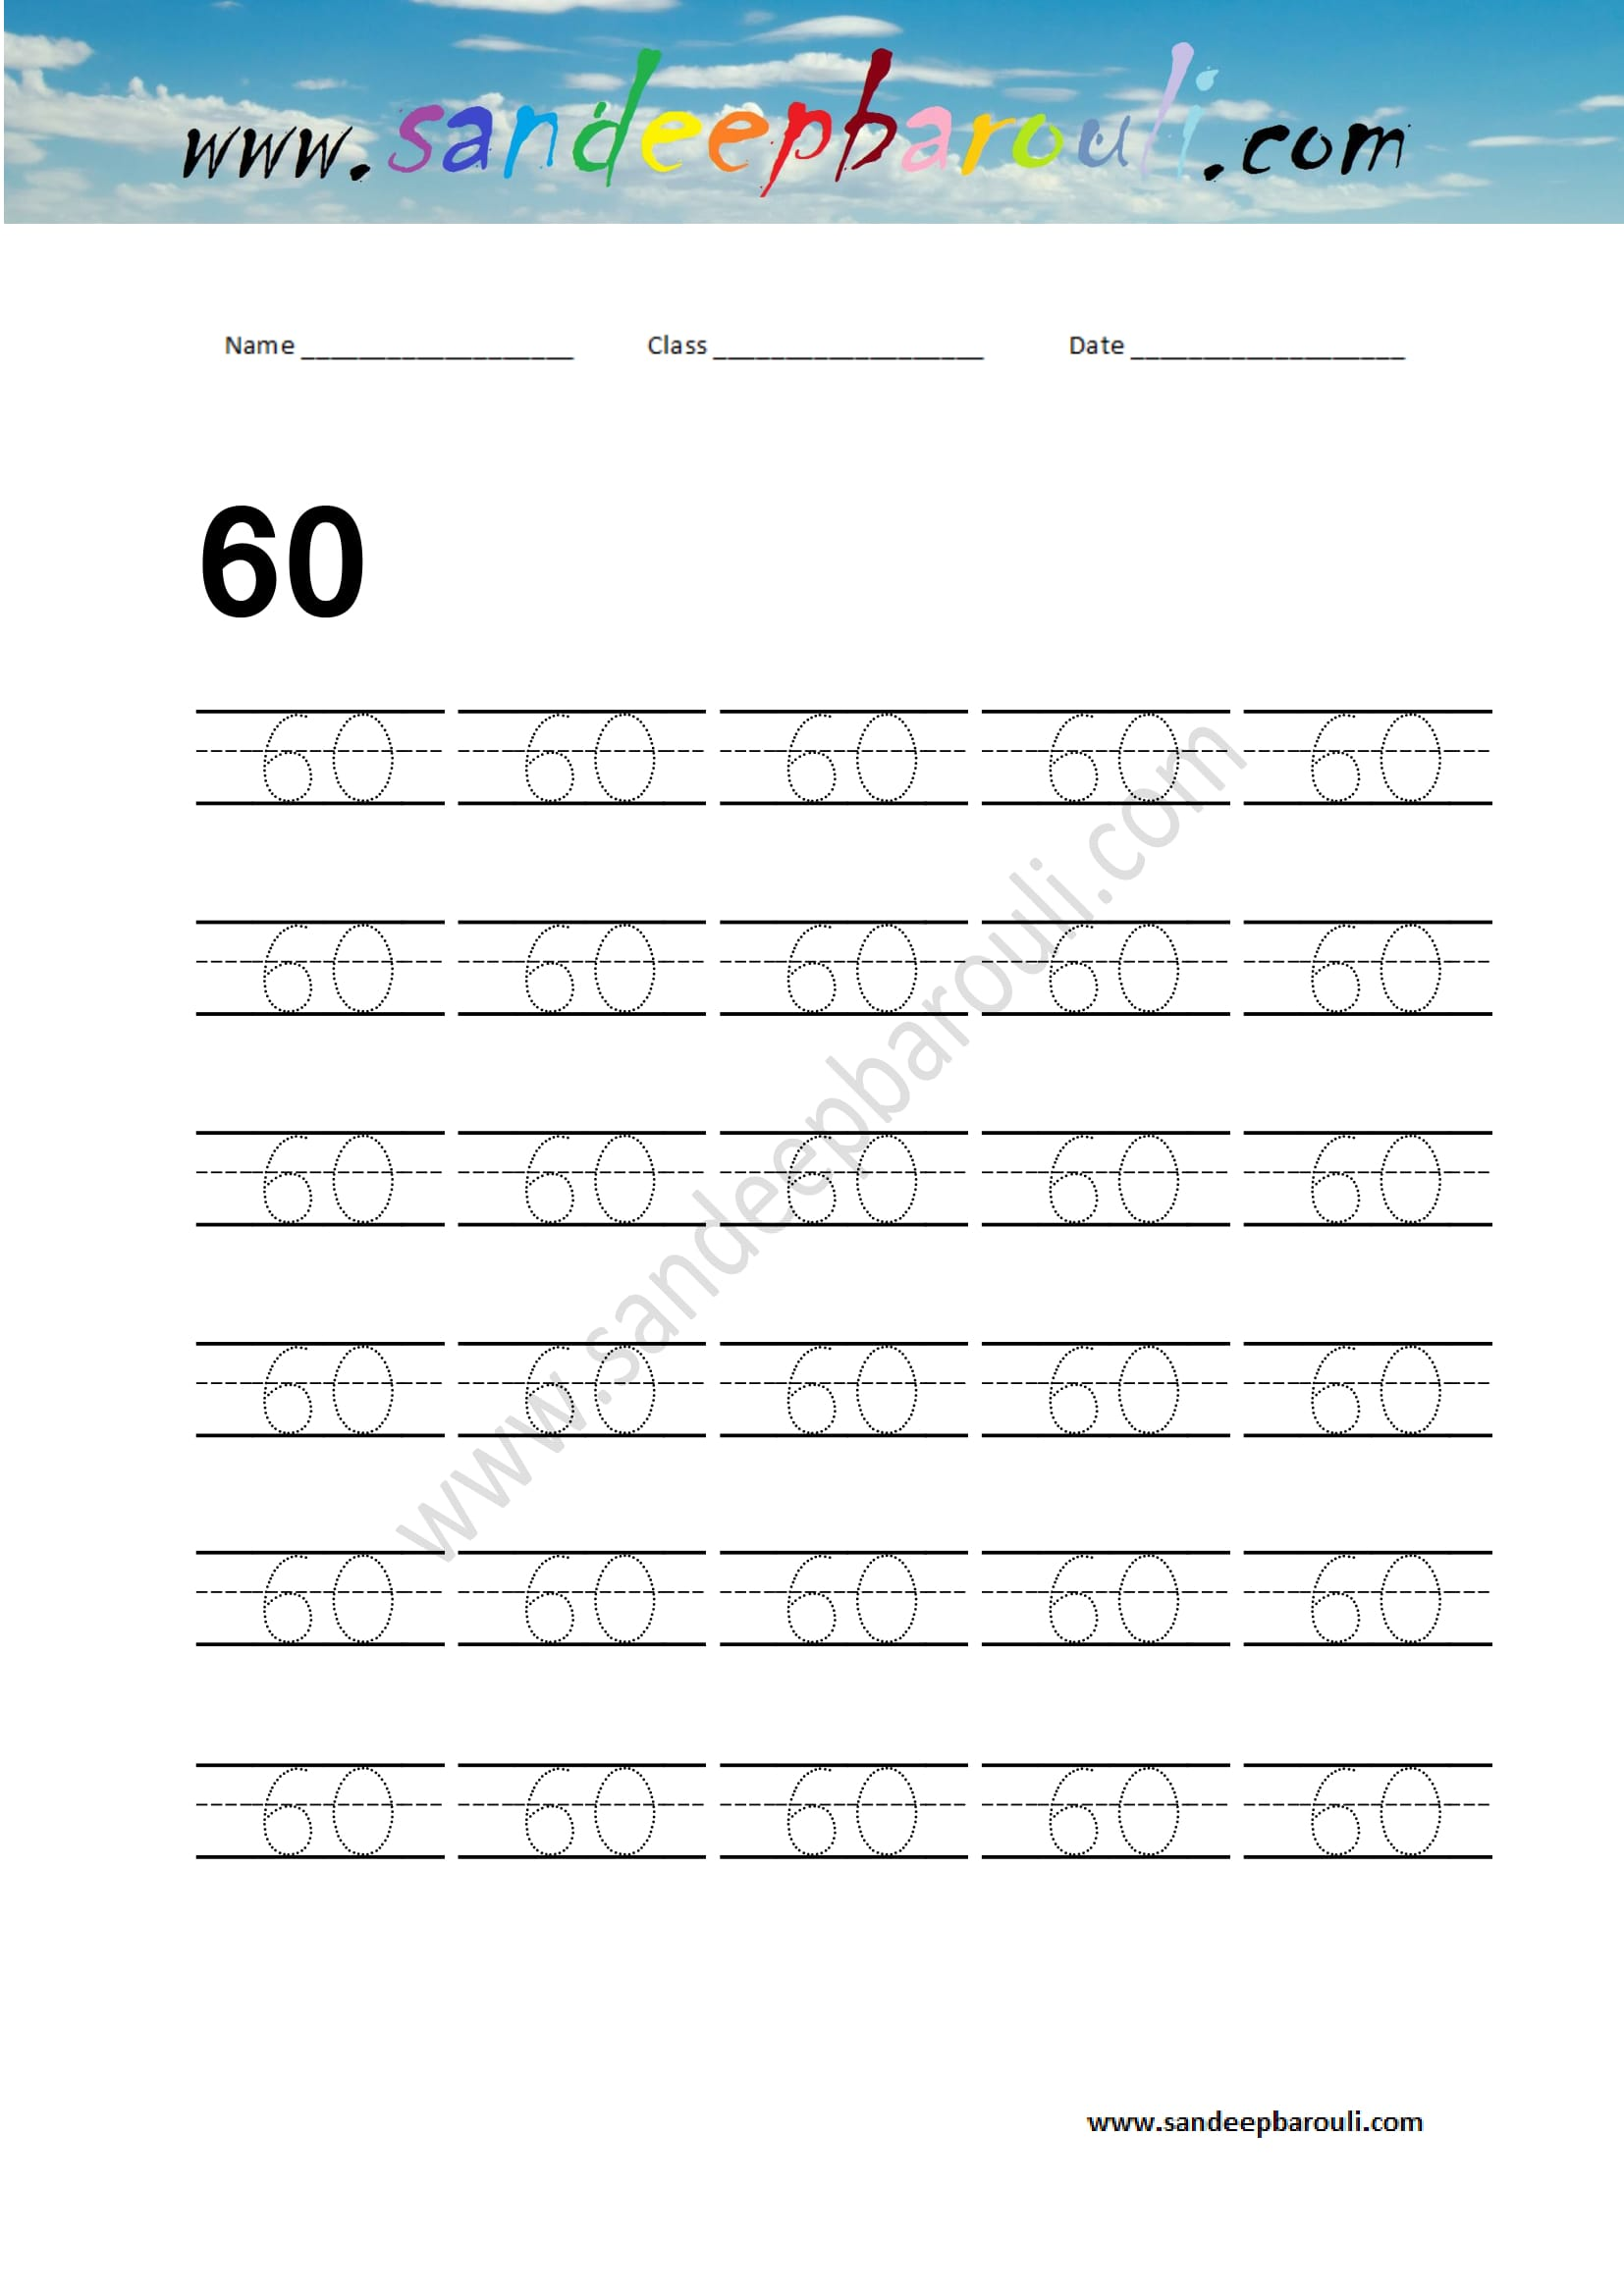 Number Writing Practice Number 60 Sandeepbarouli